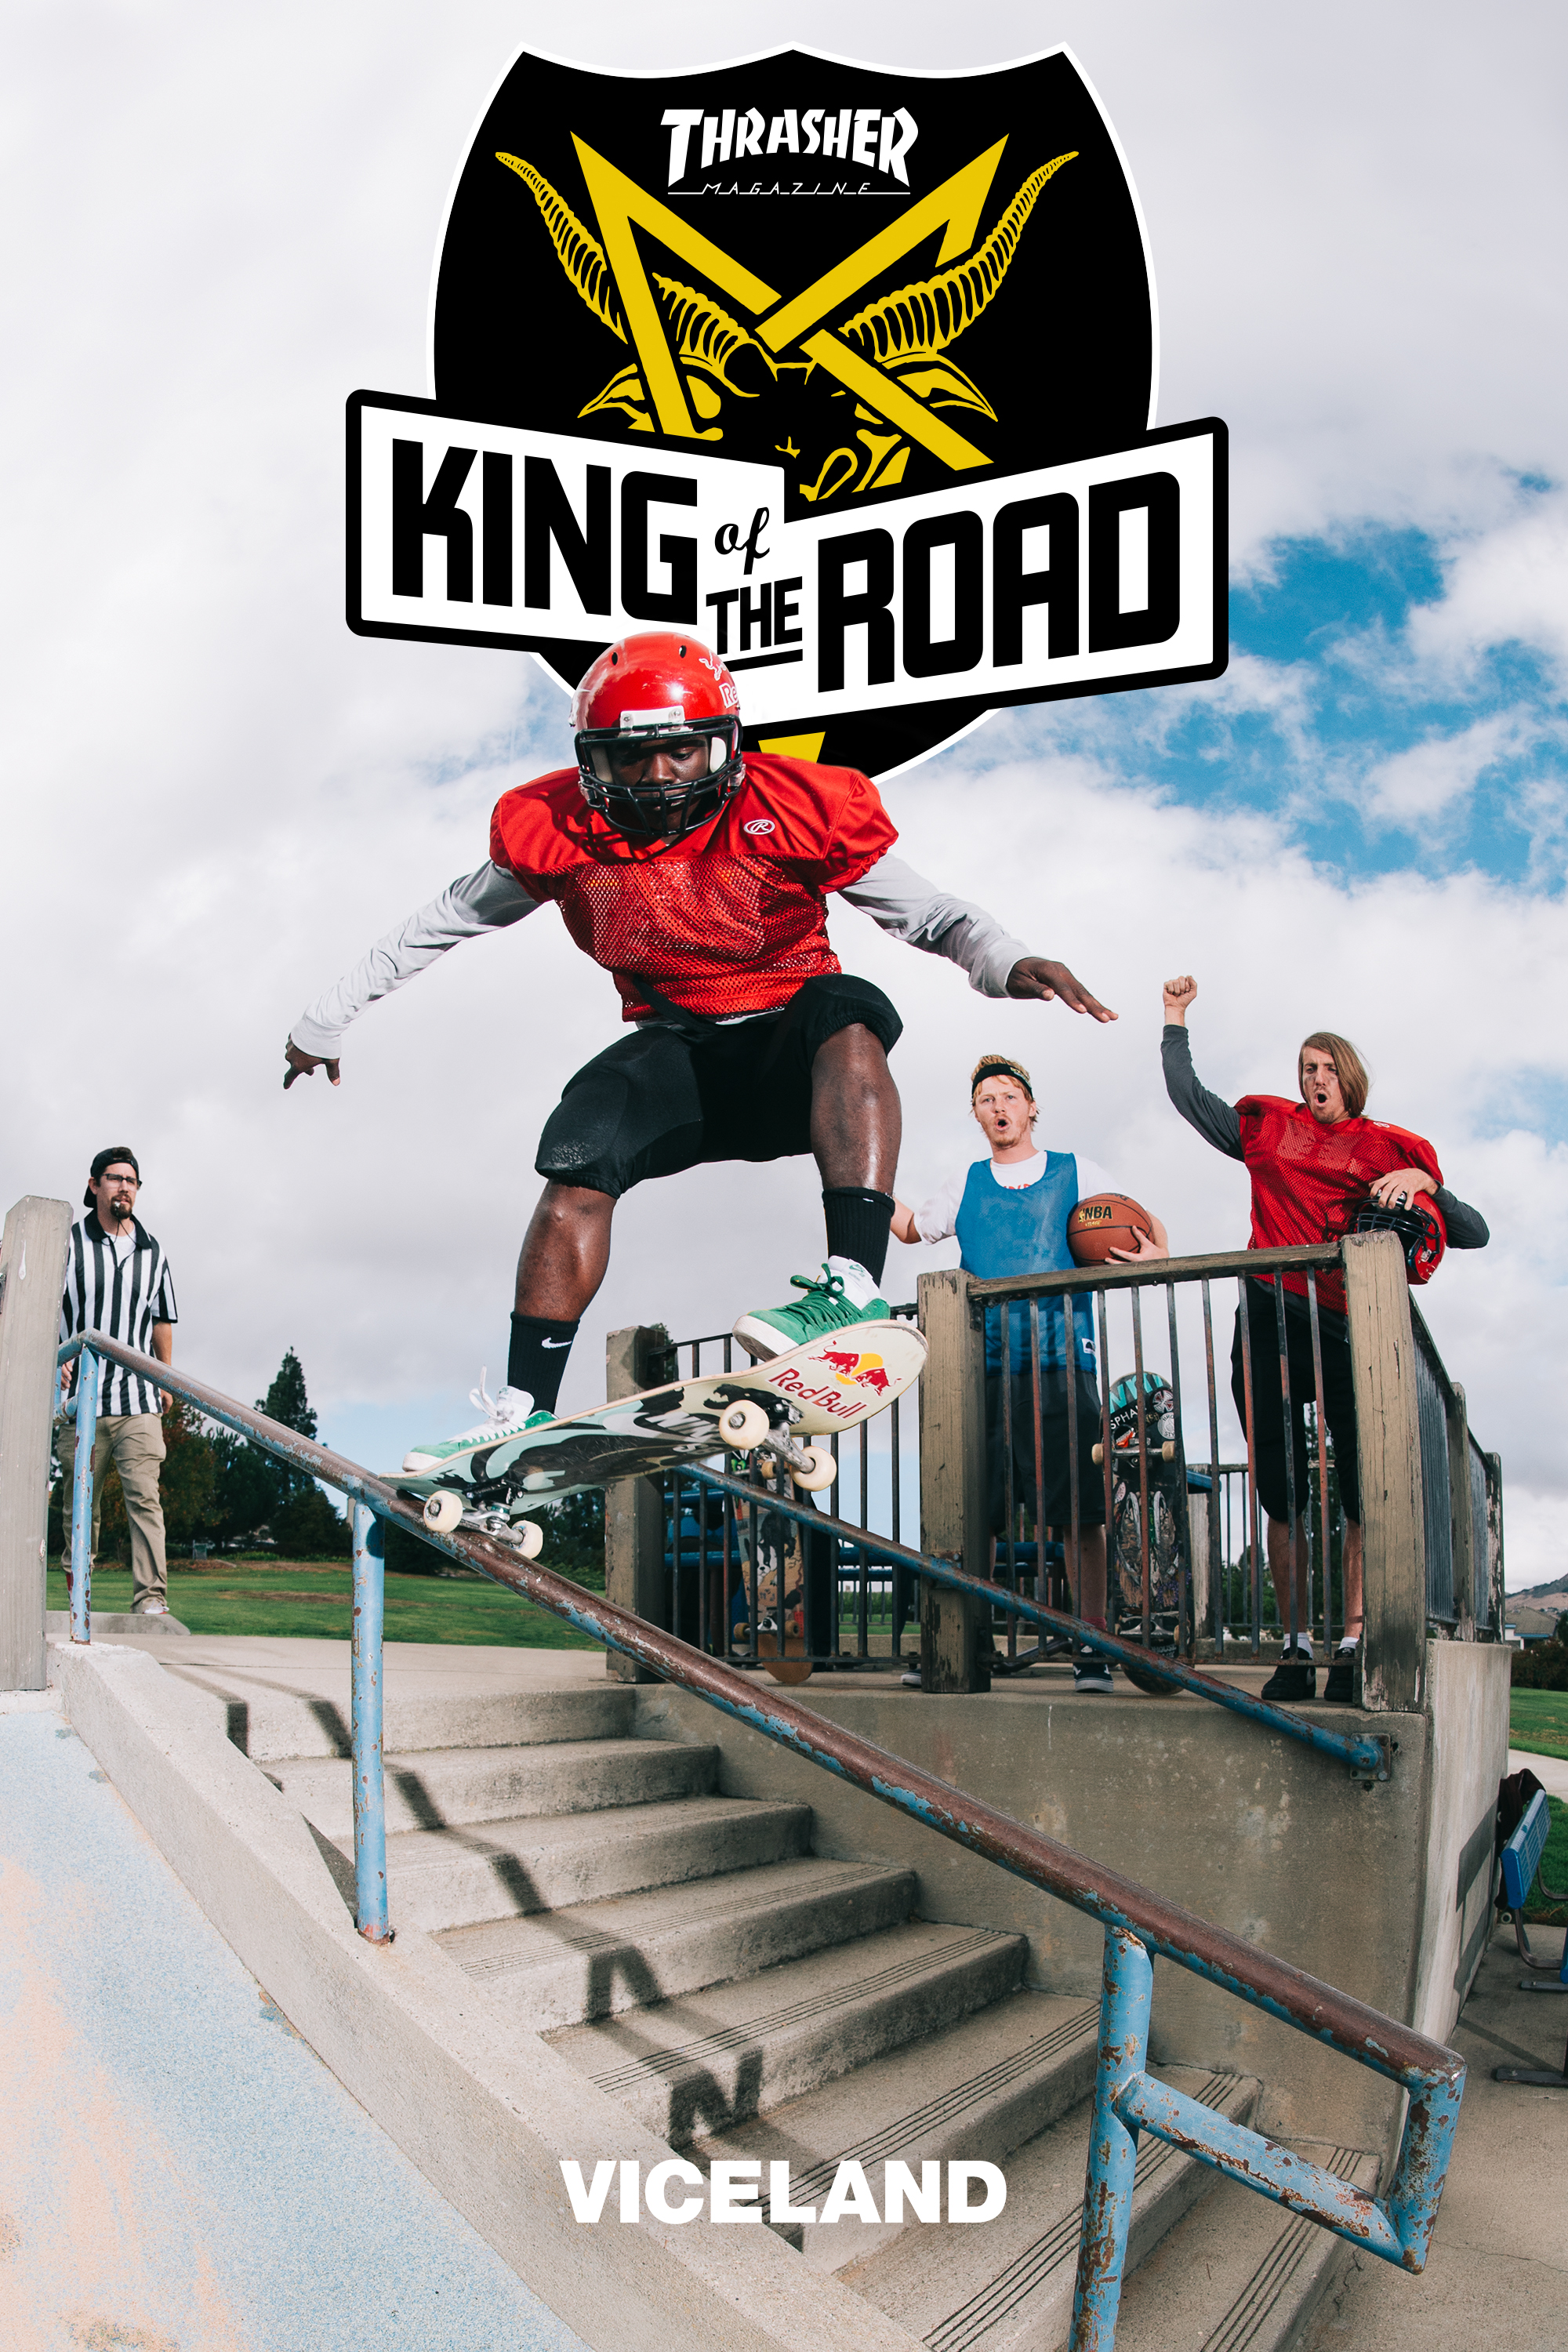 King Of The Road - VICELAND